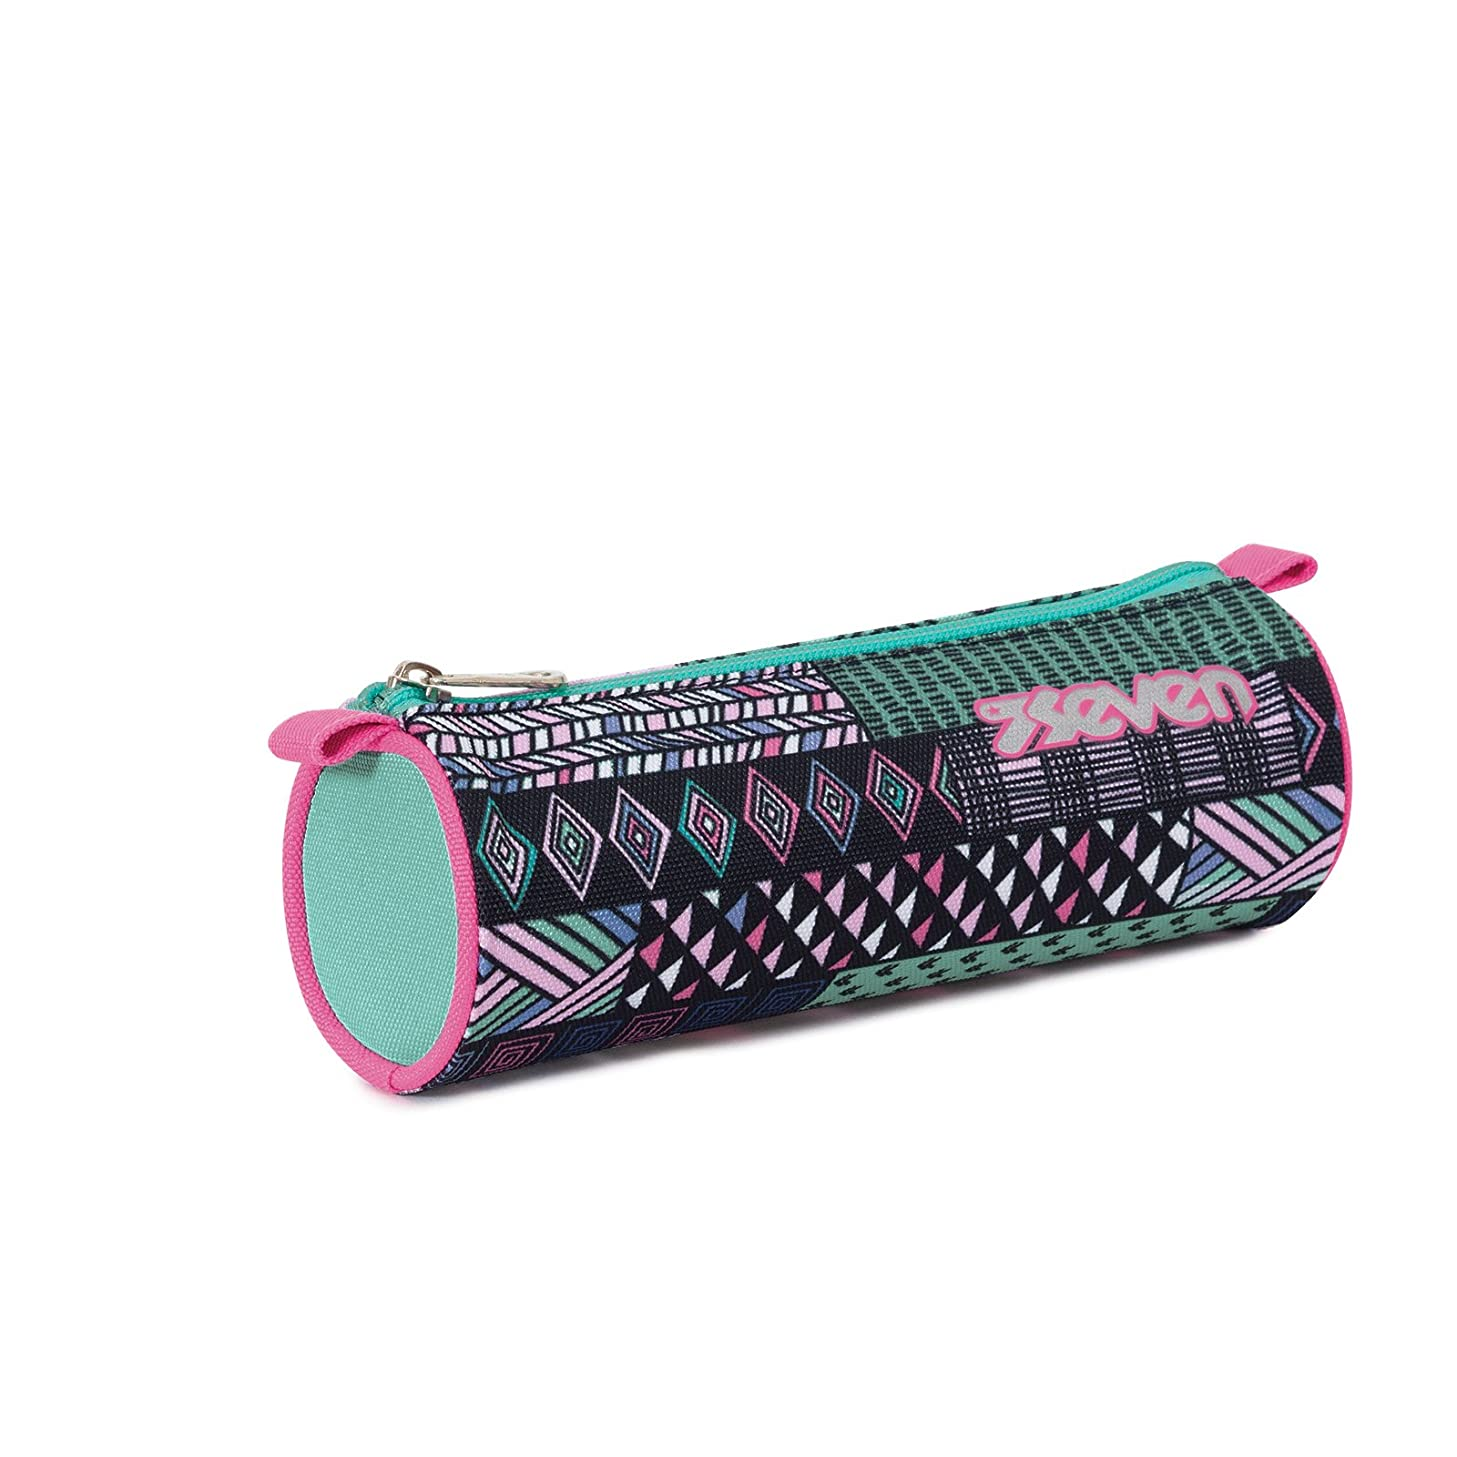 Pencil Bag - SEVEN - ETHNIC - Black Green